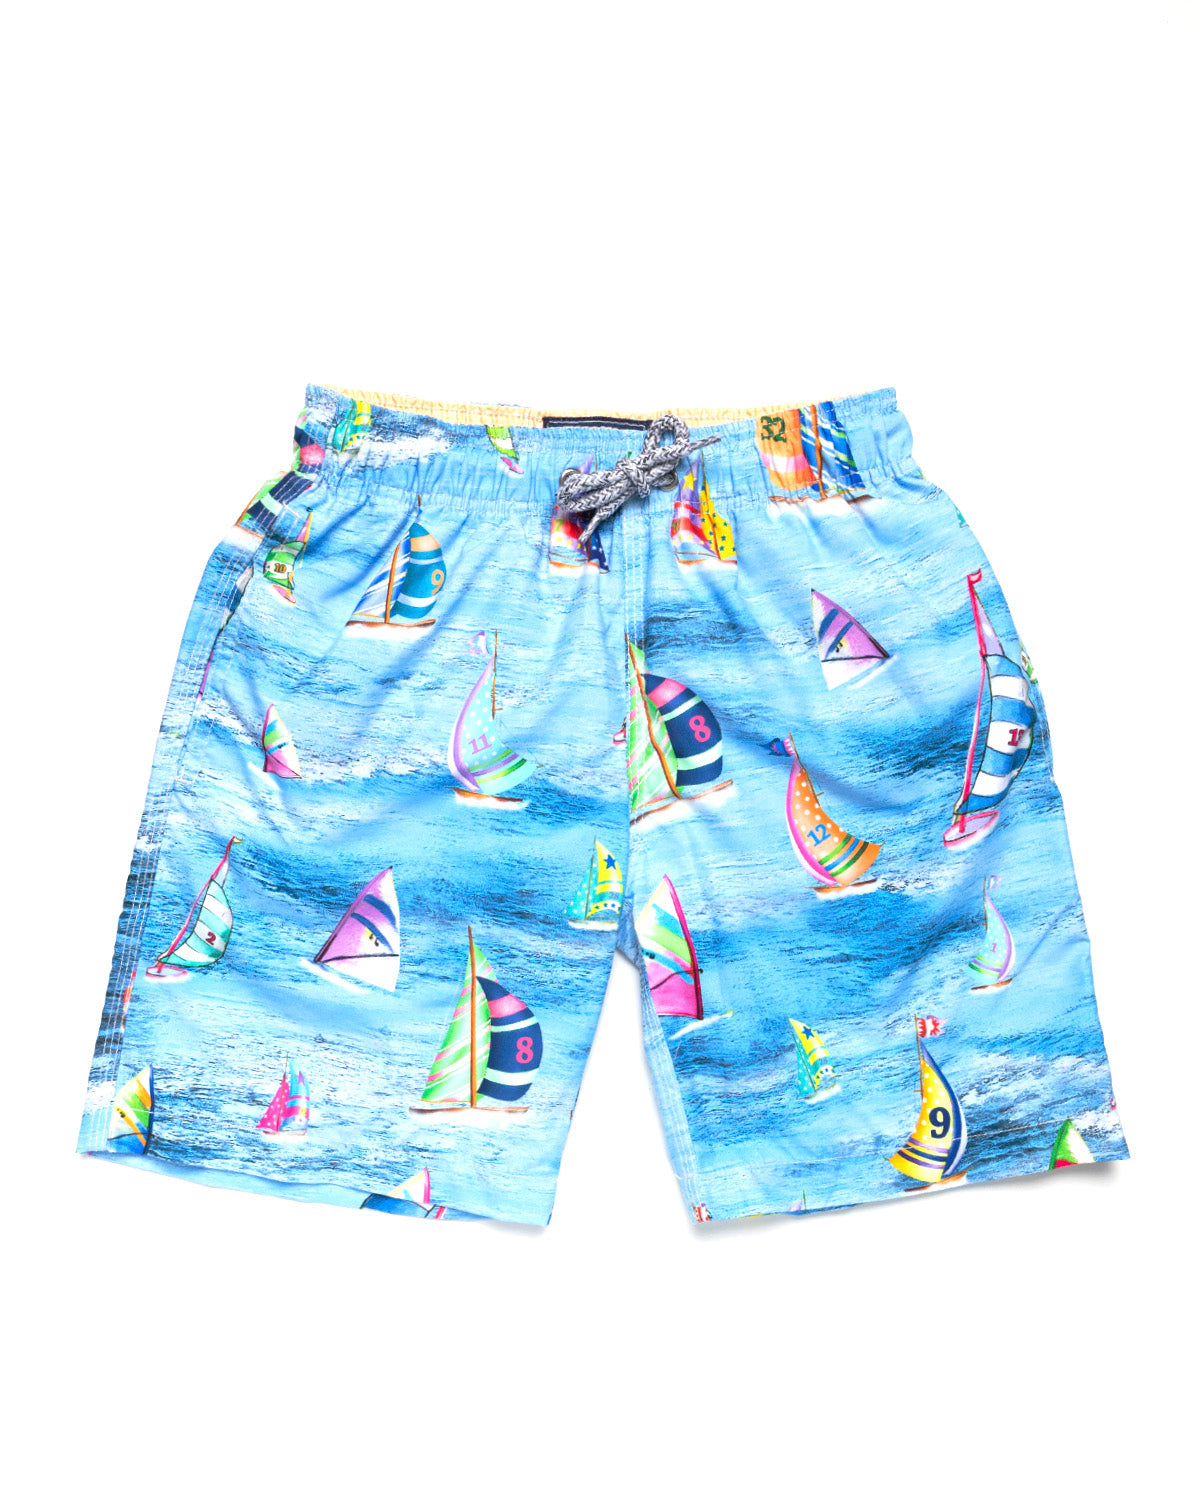 d072669d84 Boy's Sailboat Racing Print Swim Trunk- Blue